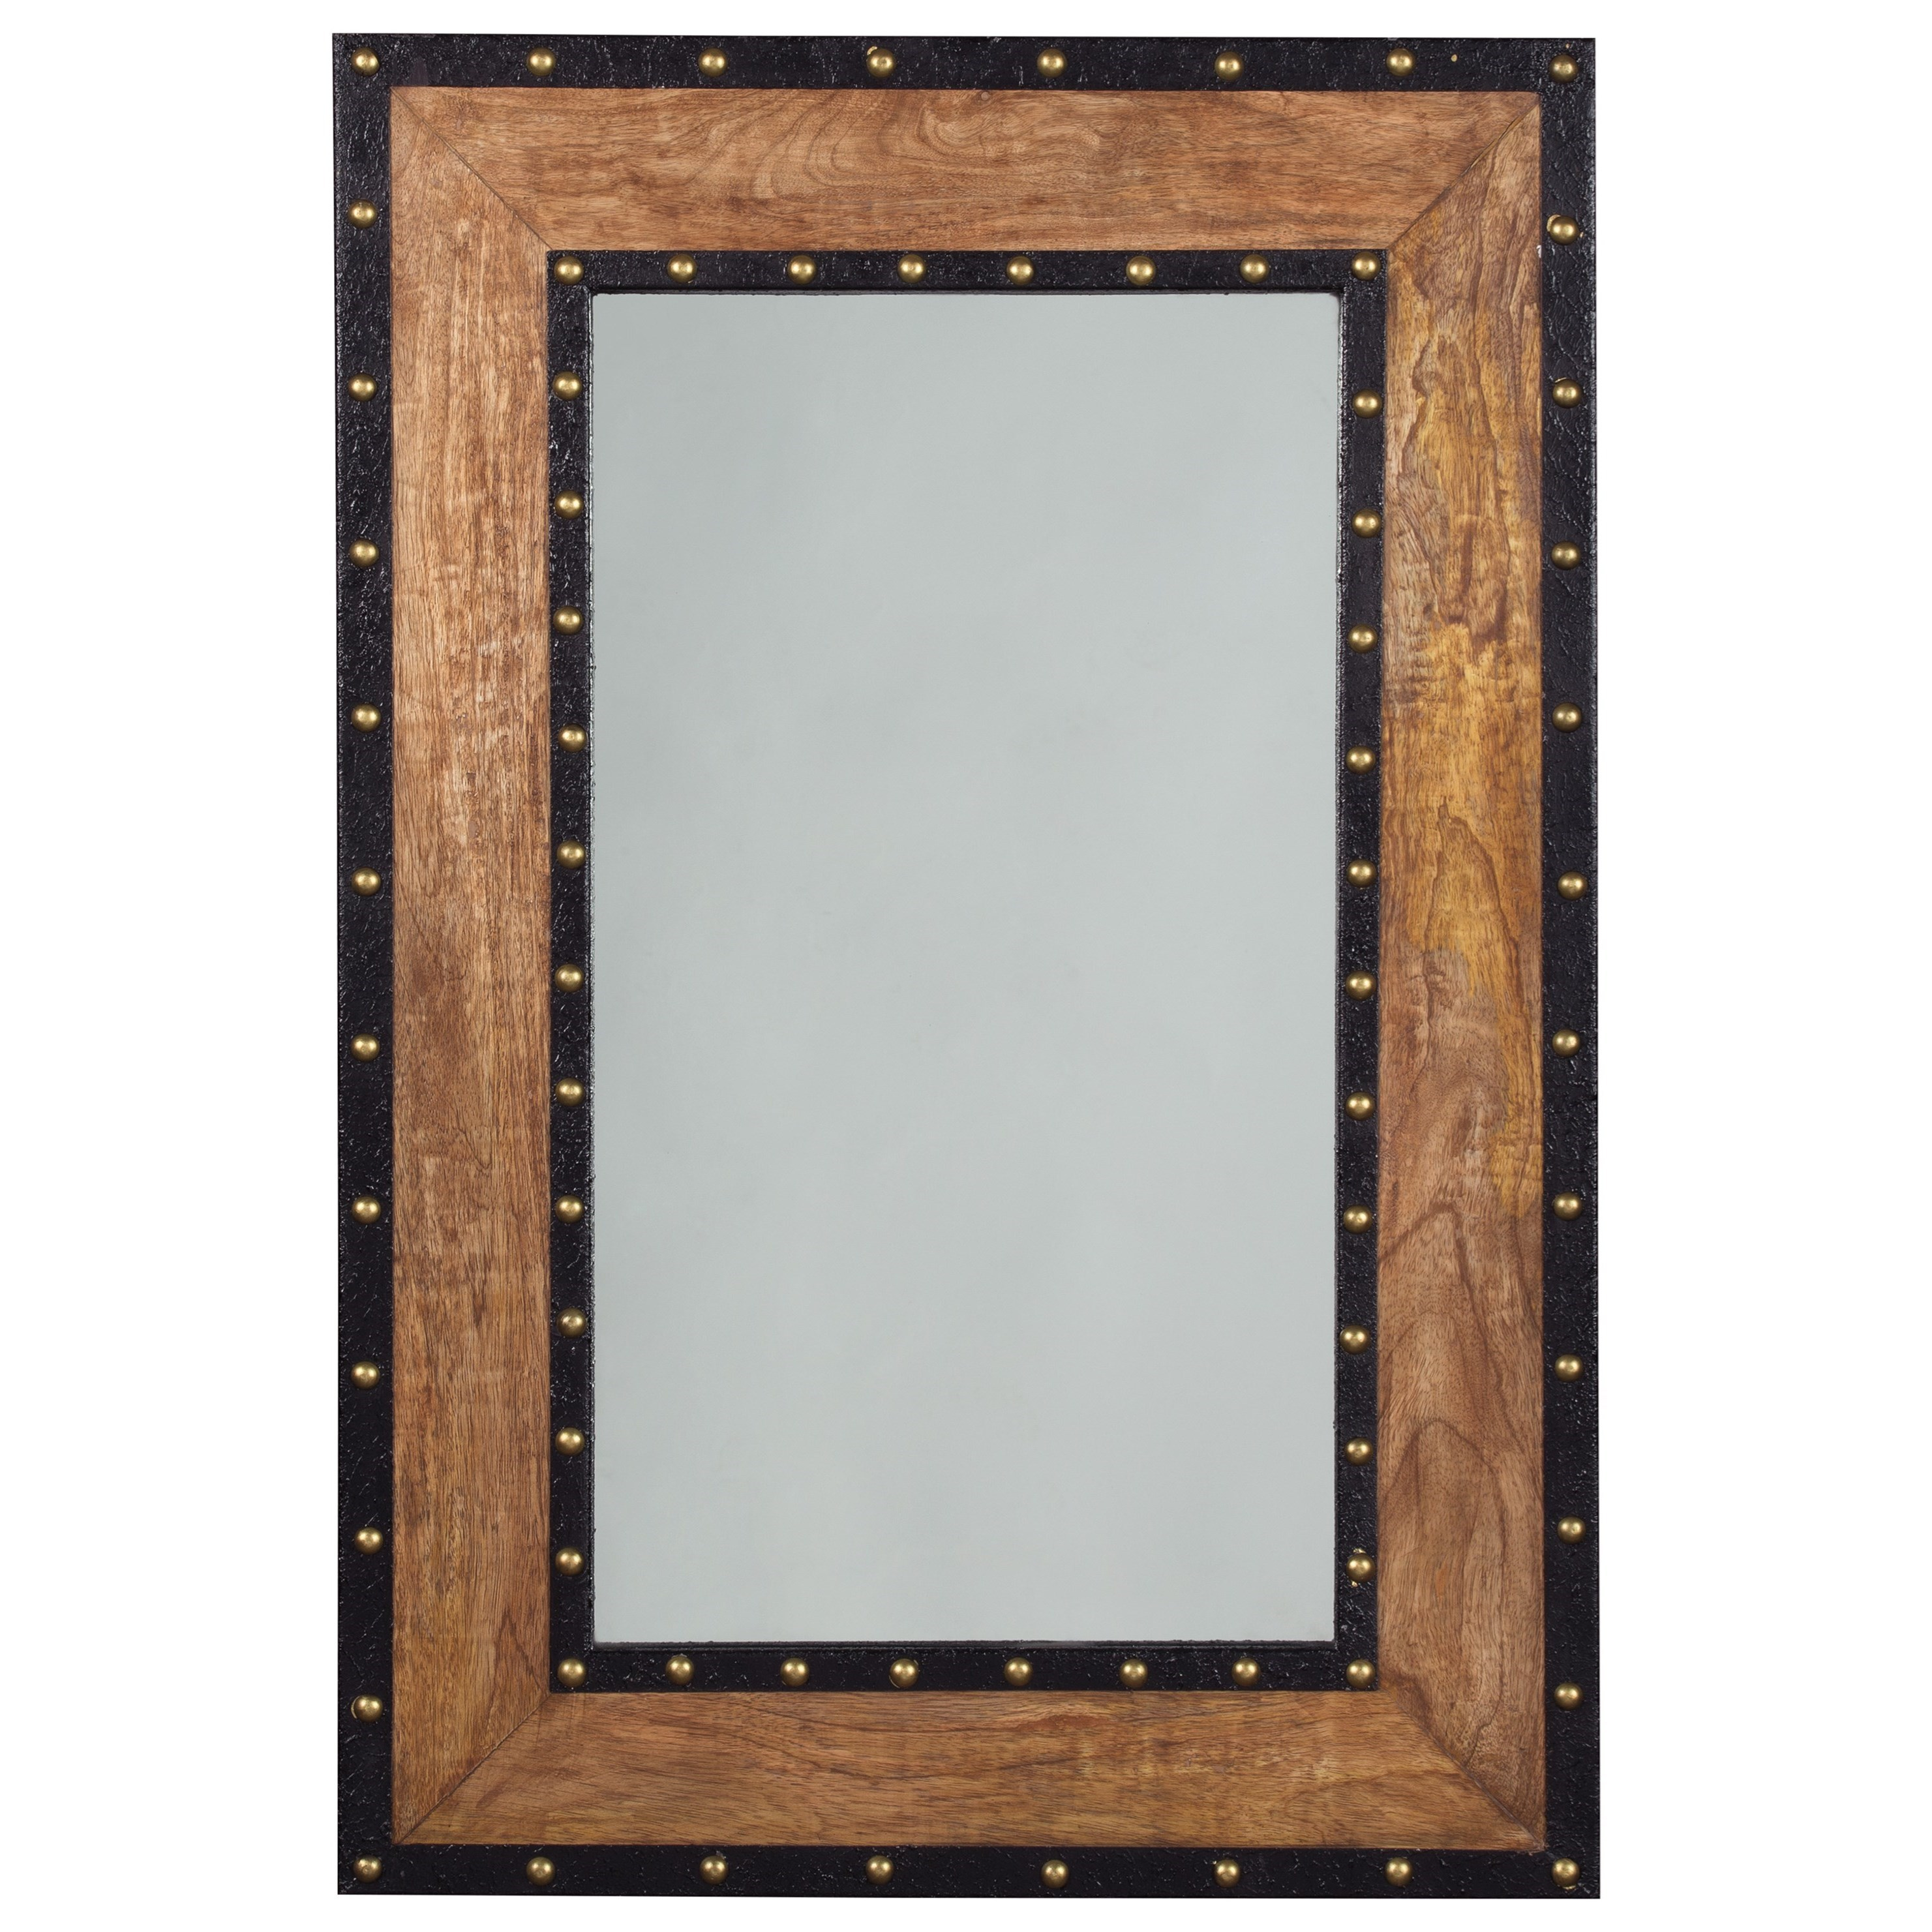 Signature Design by Ashley Accent Mirrors Dulcina Natural Finish Accent Mirror - Item Number: A8010087